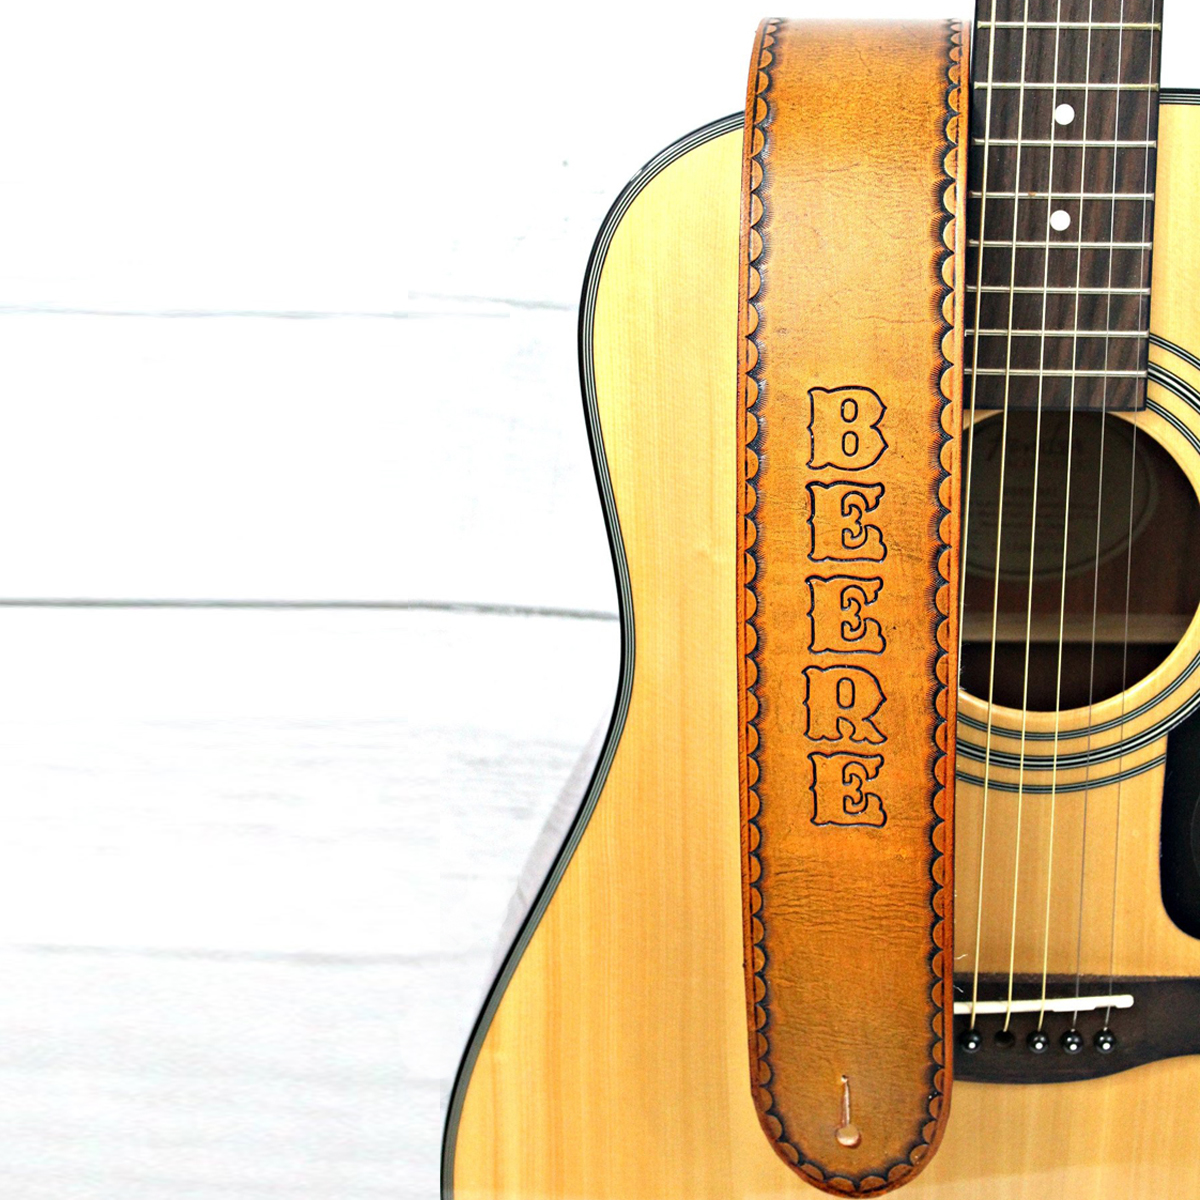 personalized-leather-guitar-strap-custom-leather-guitar-straps-the-leather-smithy_1